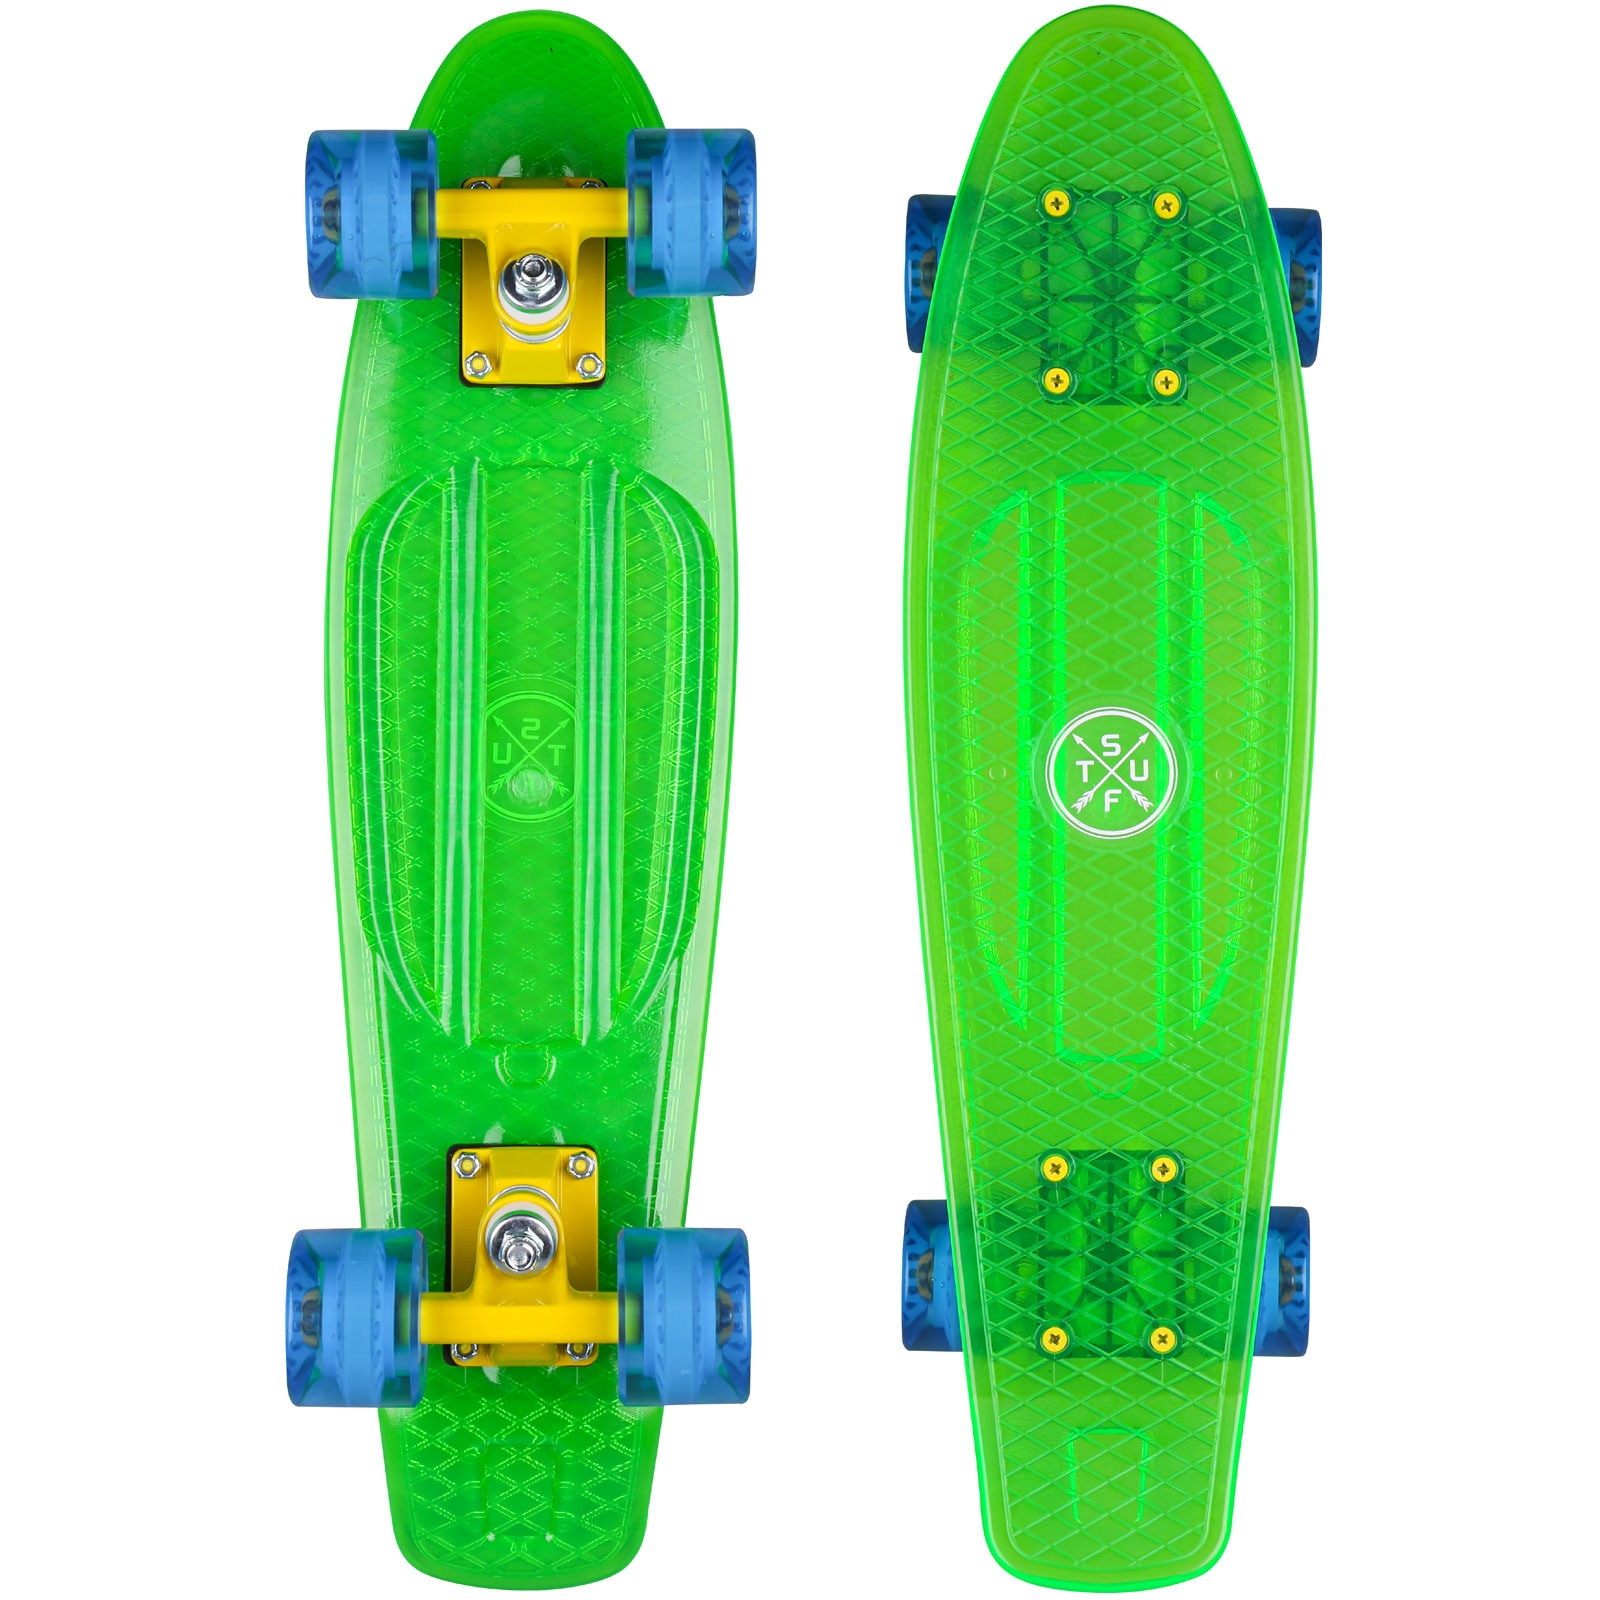 Stuf Retro Ocean Mini Cruiser Skateboard 131146-002 - Green